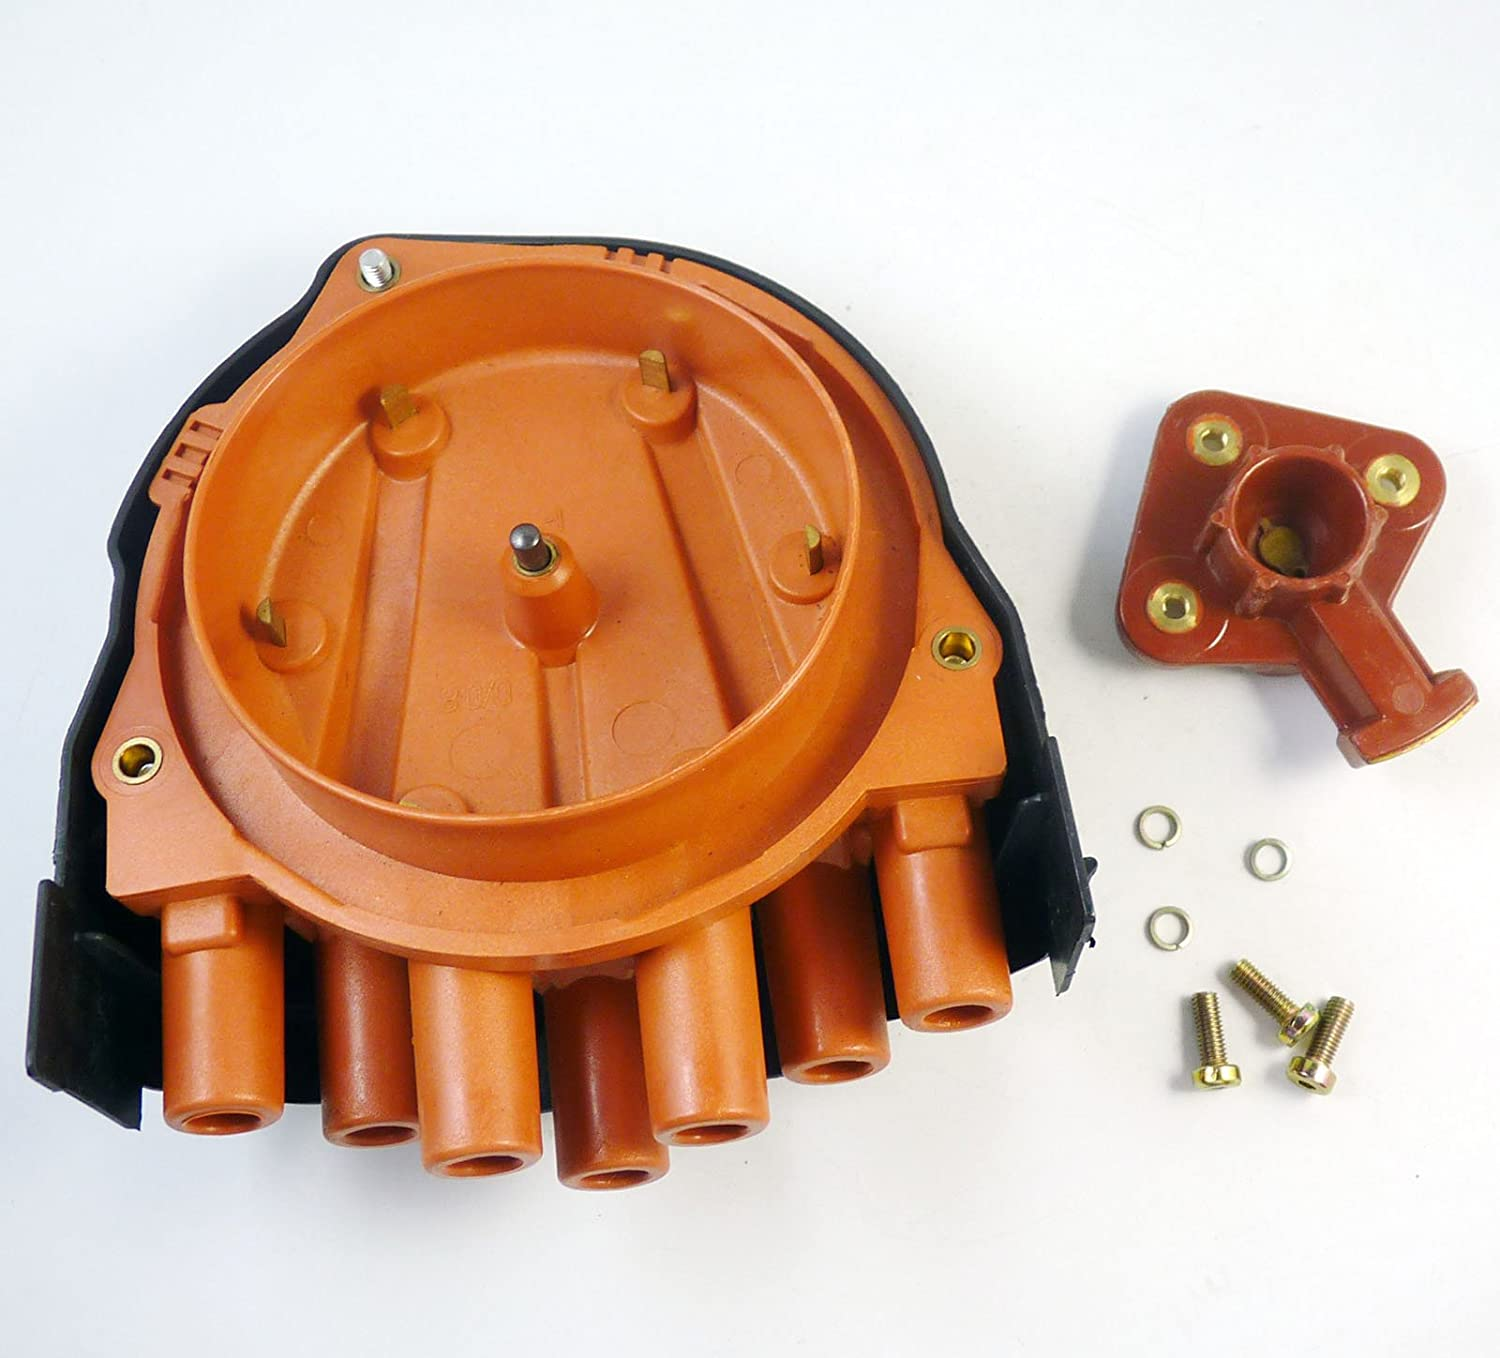 Ship from US Distributor Cap /& Rotor 12111725070 12111734110 NEW Fits FOR BMW 325i 525i 750iL M5 850Ci 535i 735iL 528e 325e